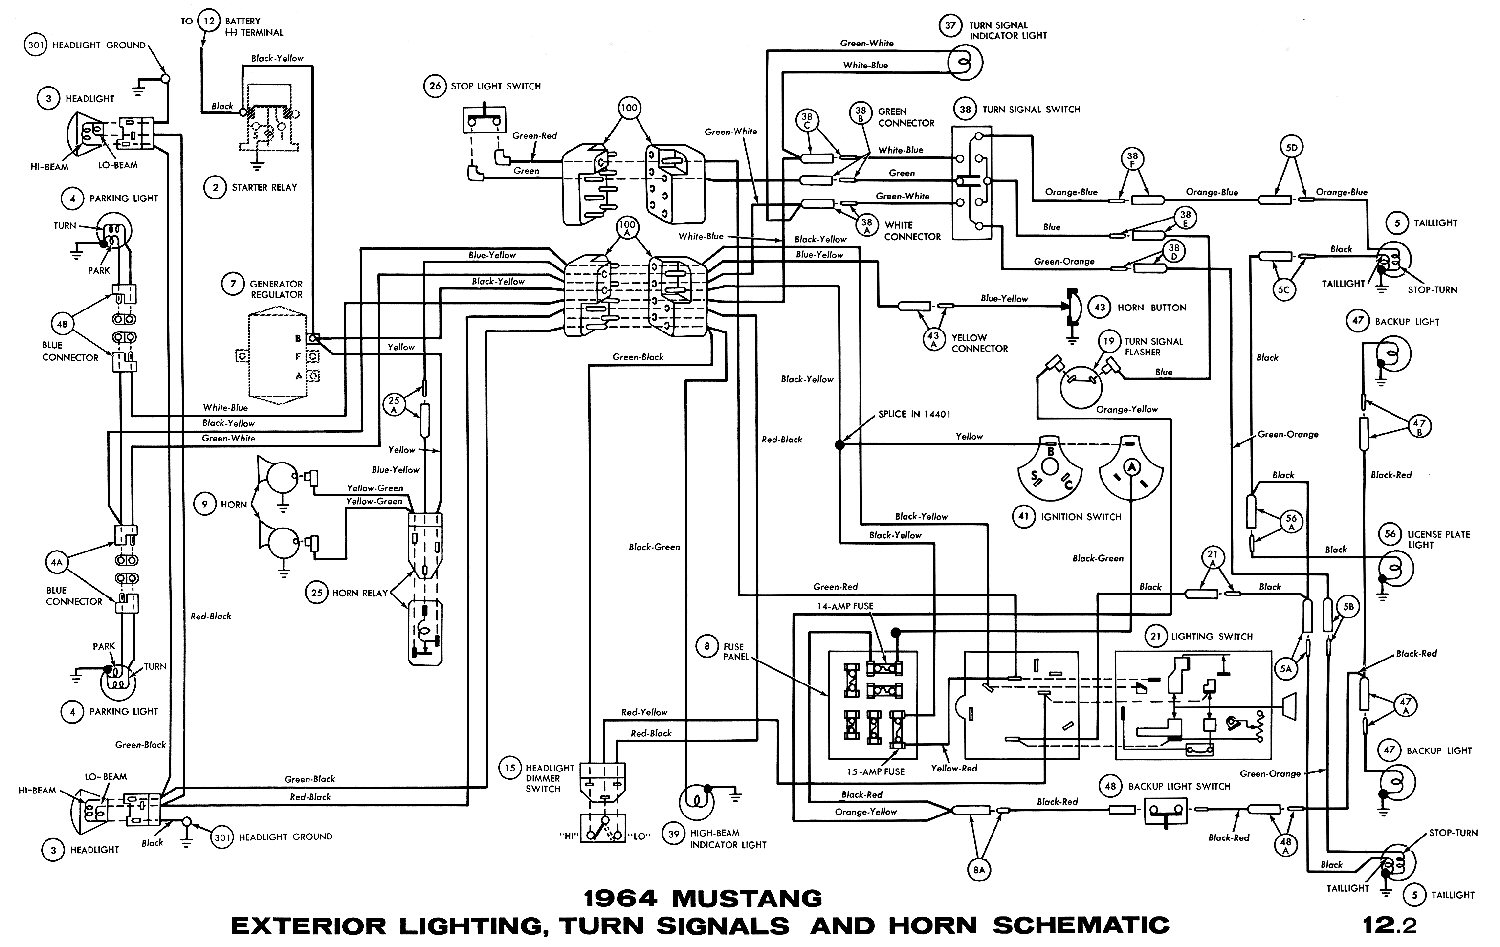 2002 Mustang Tail Light Wiring Diagram | Wiring Diagram on 89 mustang wiring diagram, 02 mustang fuse chart, 90 mustang wiring diagram, 2006 mustang wiring diagram, 88 mustang wiring diagram, 91 mustang wiring diagram, 93 mustang wiring diagram, 02 mustang oil filter, 02 mustang fuel pump wiring, 86 mustang wiring diagram, 92 mustang wiring diagram, 96 mustang wiring diagram, 02 mustang headlight, 02 mustang motor, 02 mustang radio, 94 mustang wiring diagram, 02 mustang engine, 2002 mustang wiring diagram, 95 mustang wiring diagram, 04 mustang wiring diagram,